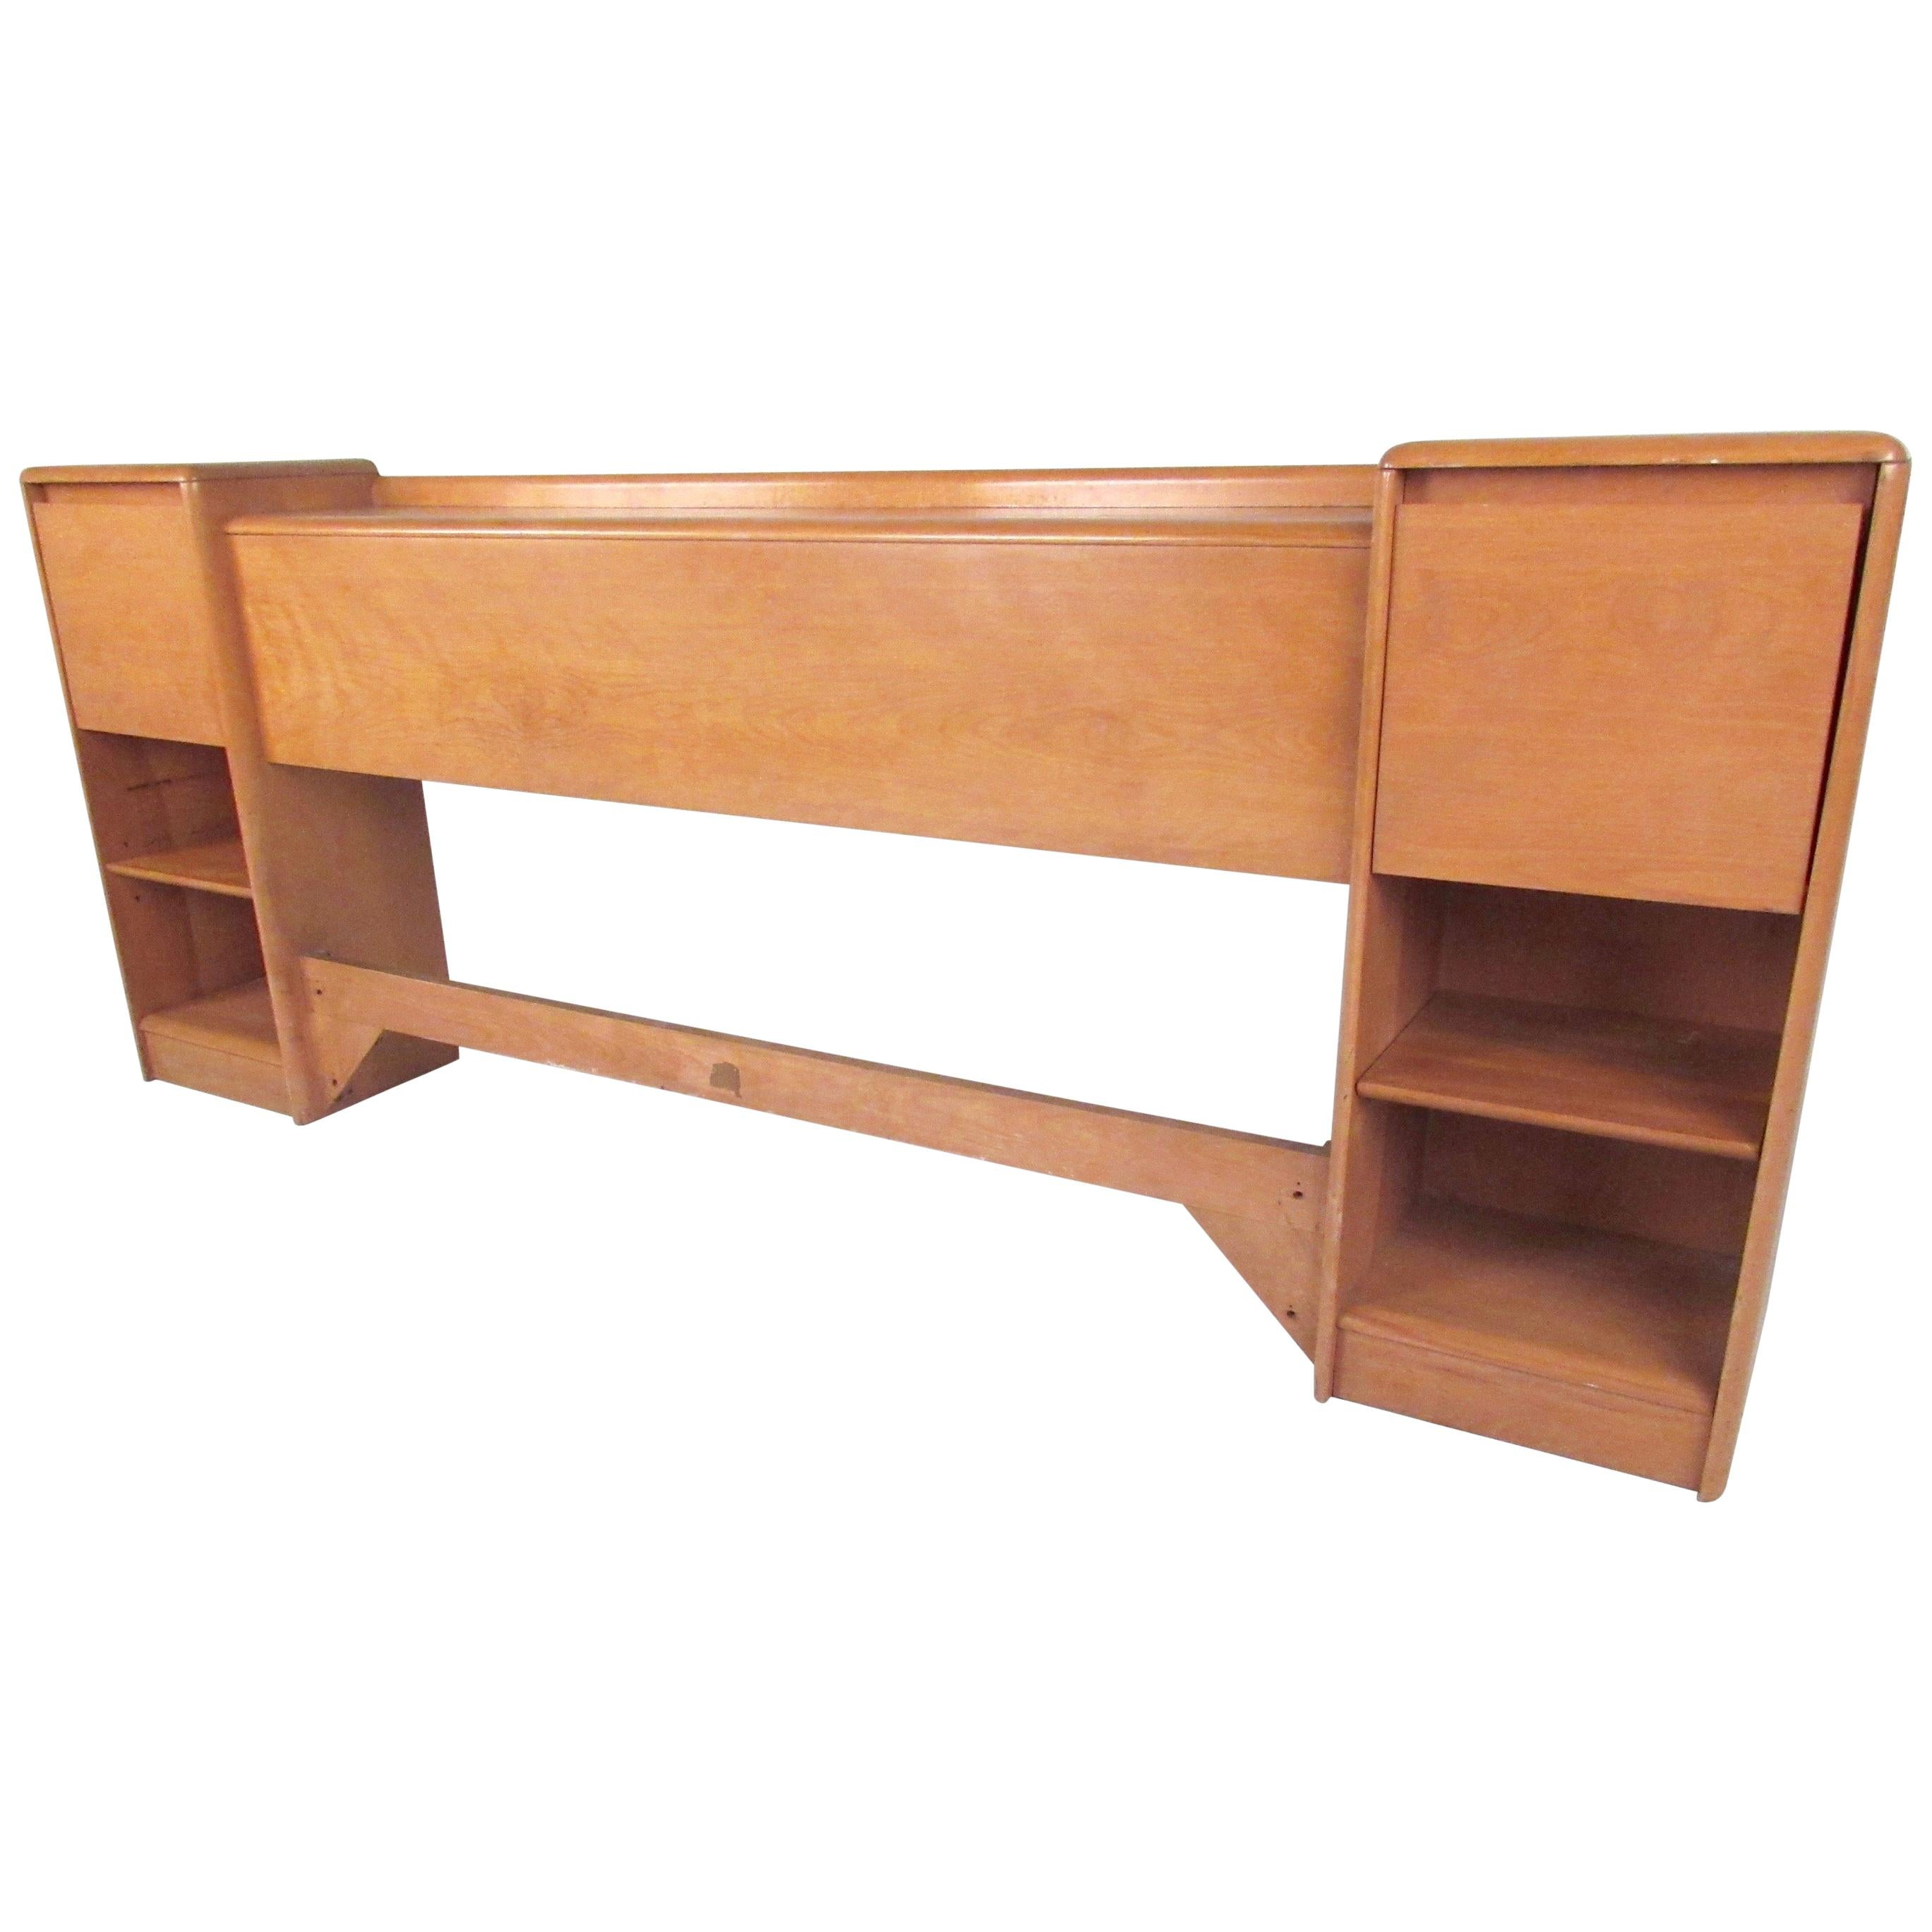 Heywood-Wakefield Full Size Headboard with Nightstands